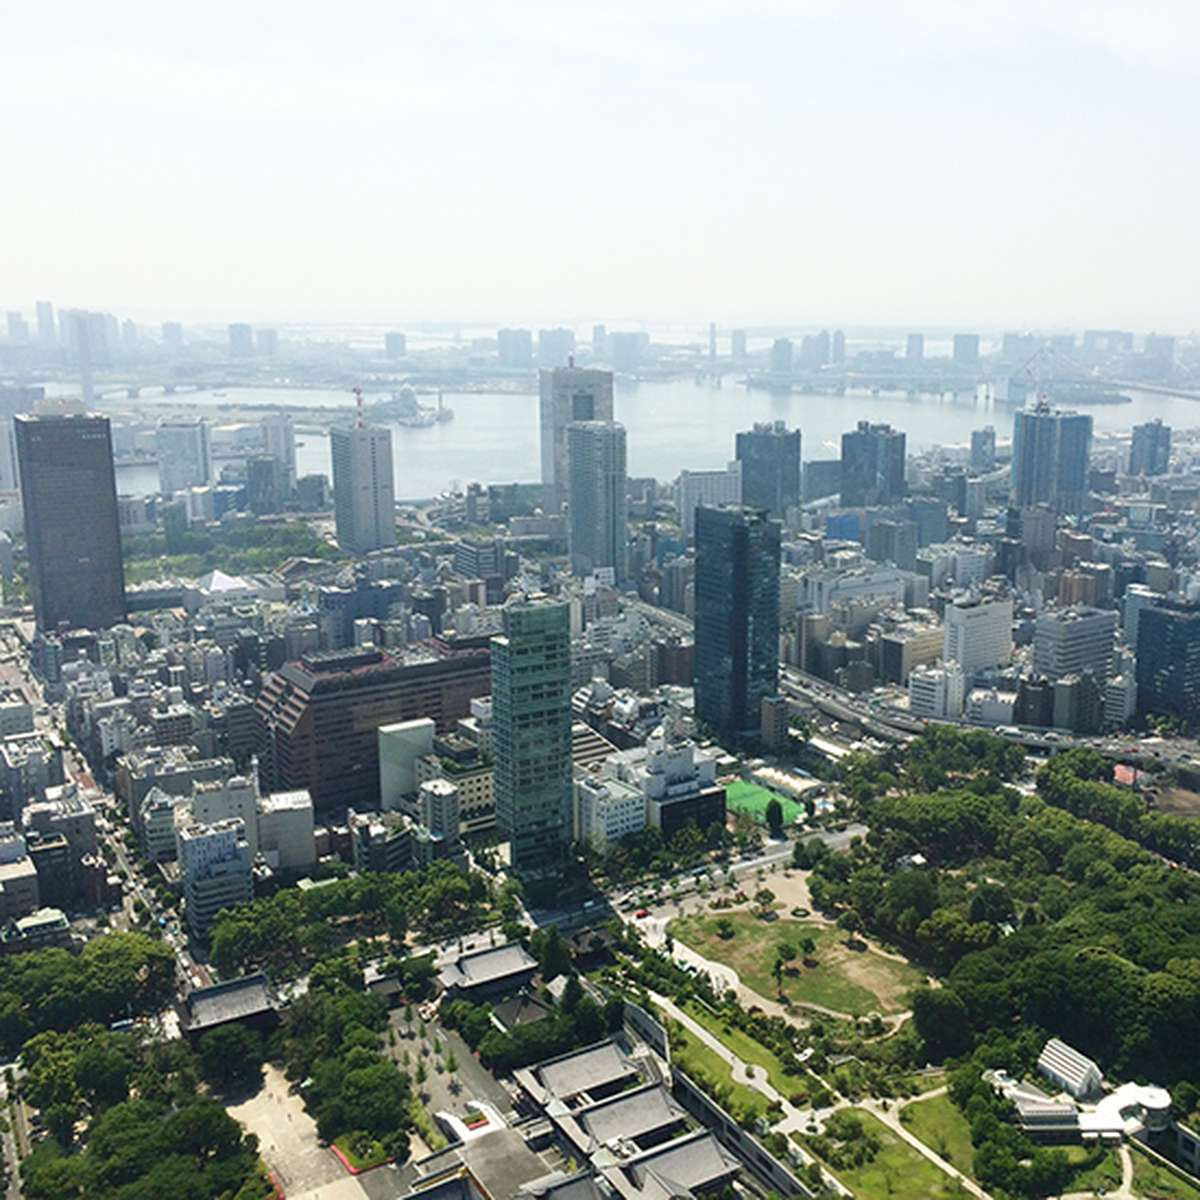 a south-eastern view of downtown Tokyo from on top of Tokyo Tower